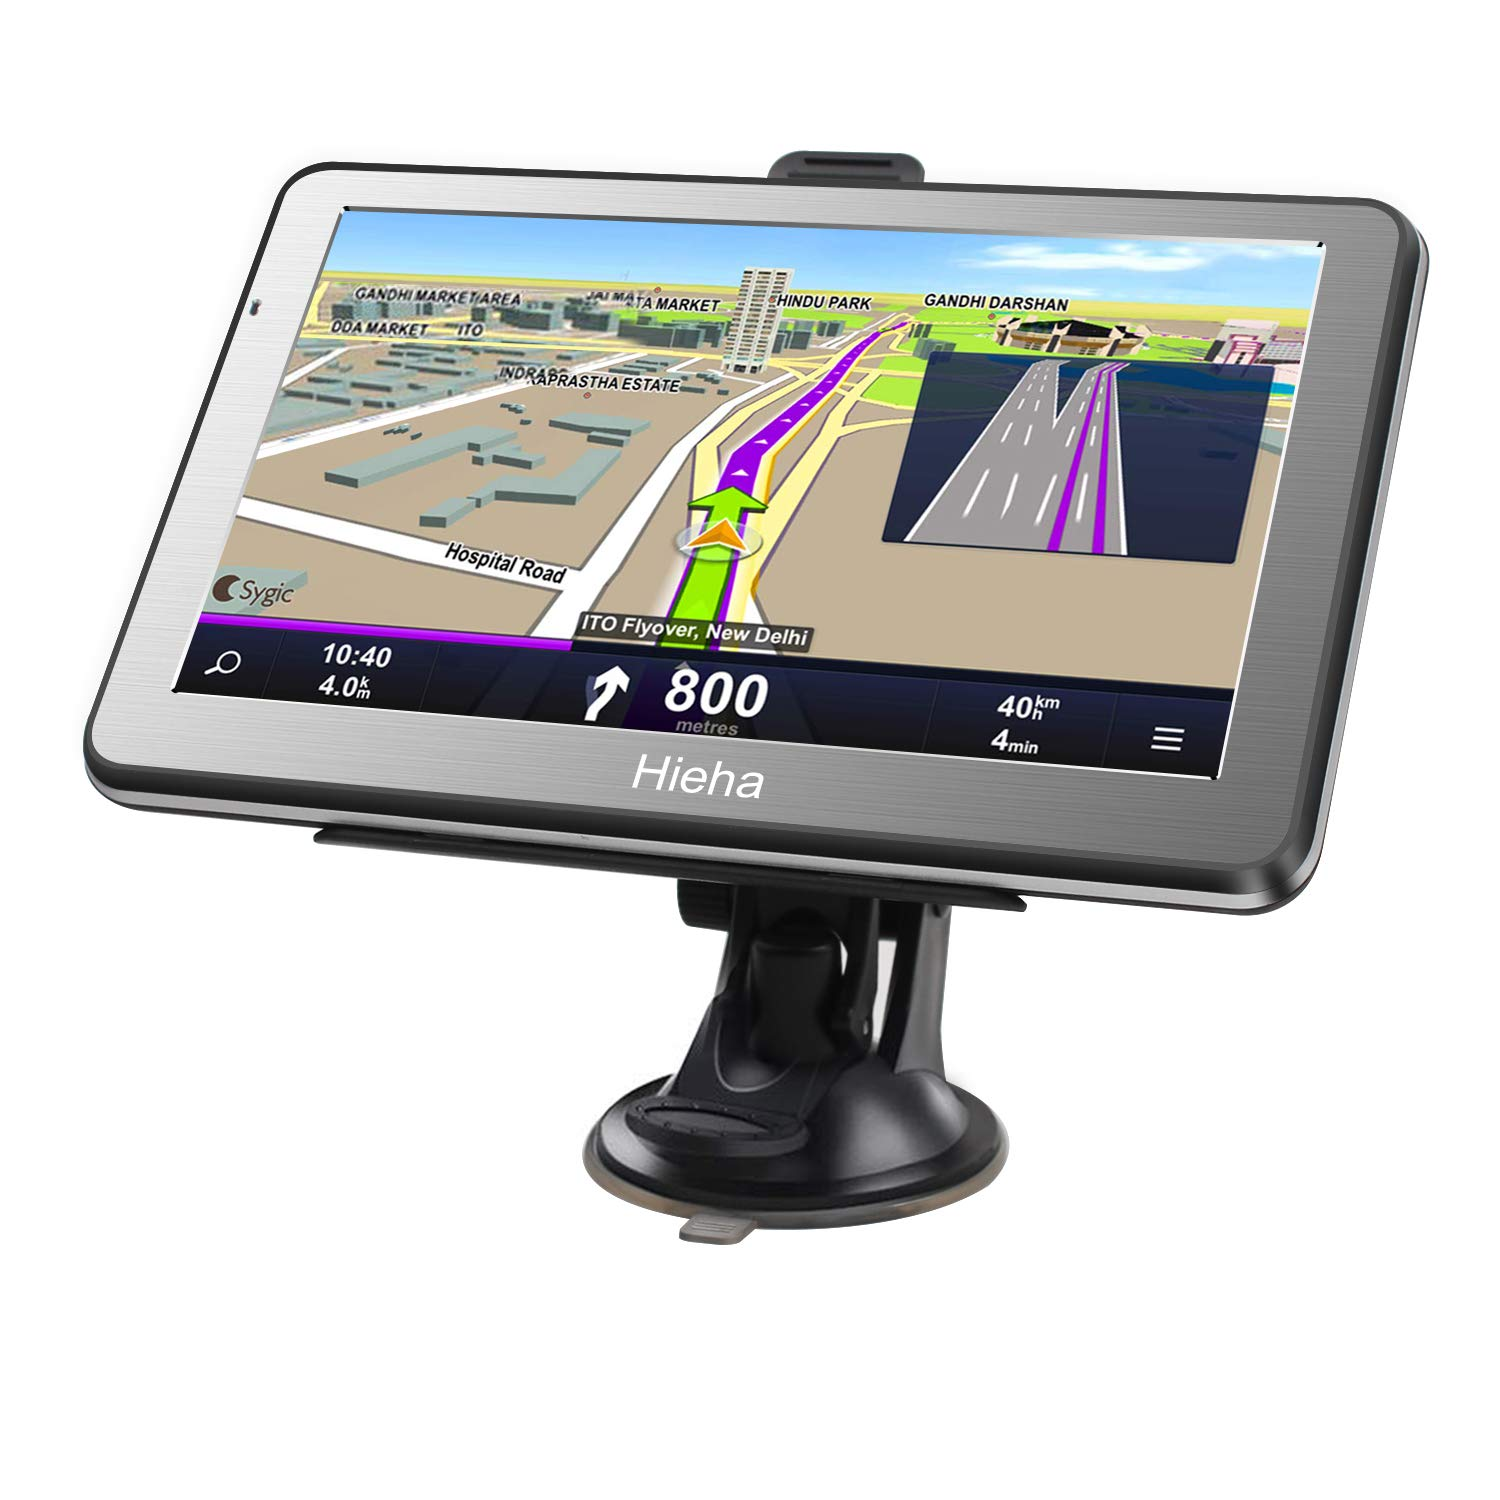 Hieha 7 Inches Navigation System for Car Truck RV Vehicles with Pre-Loaded US/CA/MX Maps, 8GB 256Mb Touch Screen GPS Navigation Device with Car Bracket Holder, Lifetime Free Map Updates by Hieha